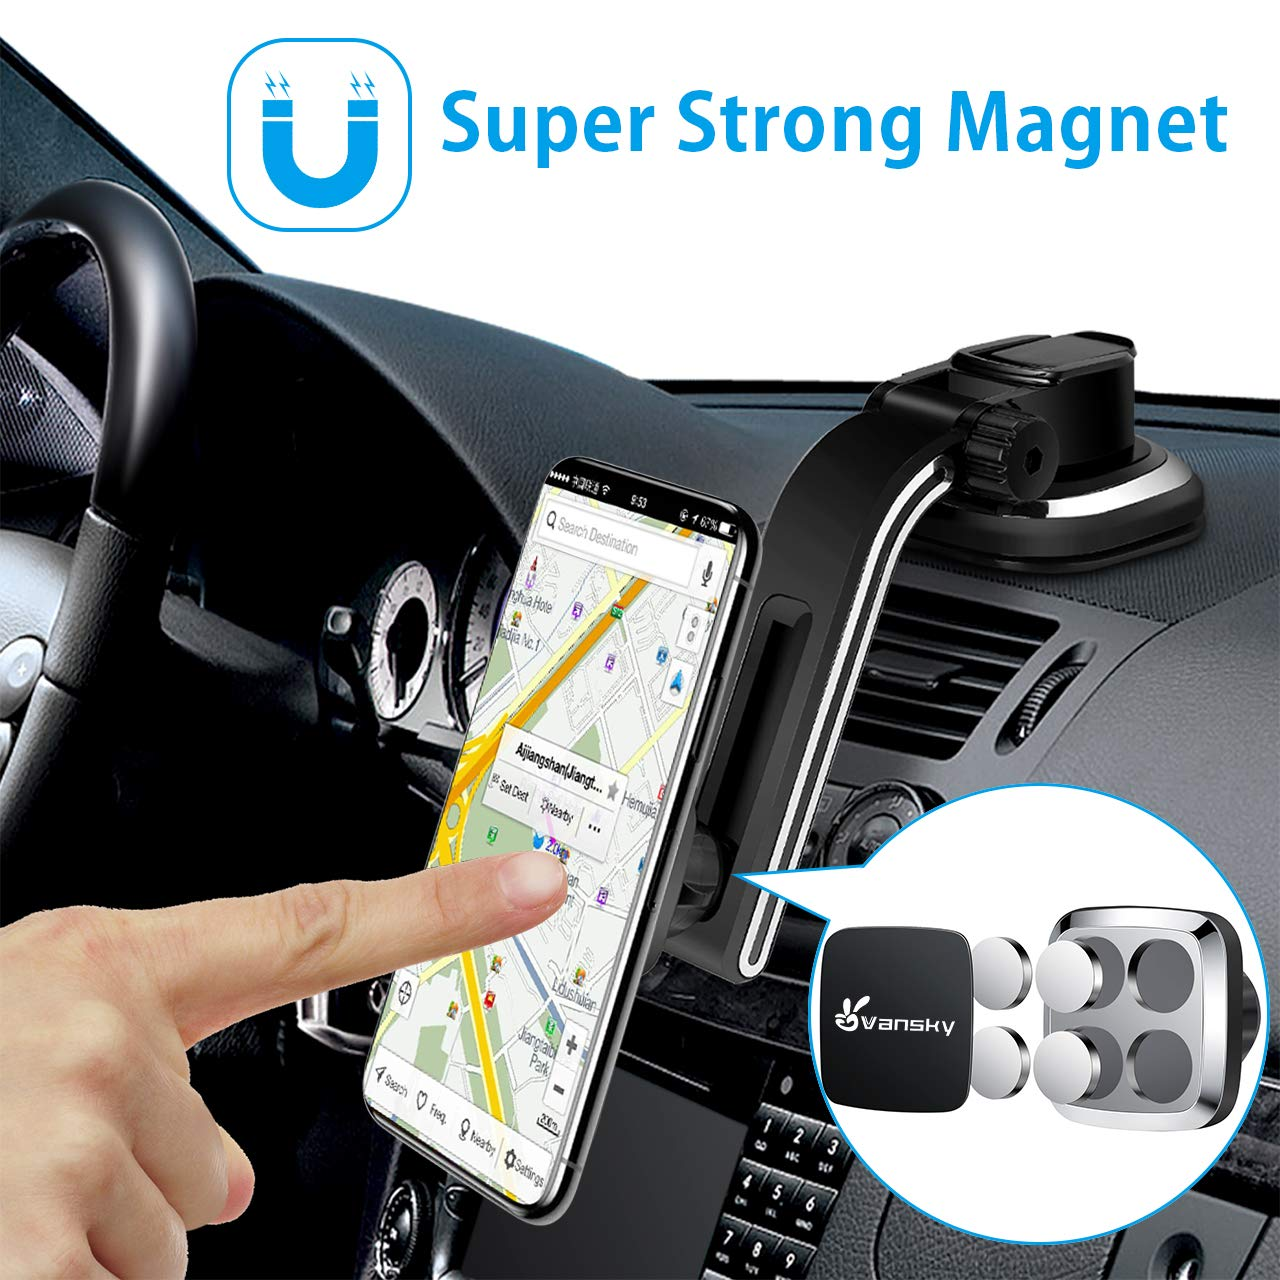 Magnetic Phone Car Mount, Vansky Dashboard Hands Free Phone Holder for Car, Strong Grip Cell Phone Car Mount for Iphone XS Max R X 8 Plus 7 6S Samsung Galaxy S9 S8 Edge S7 S6 Note by Vansky